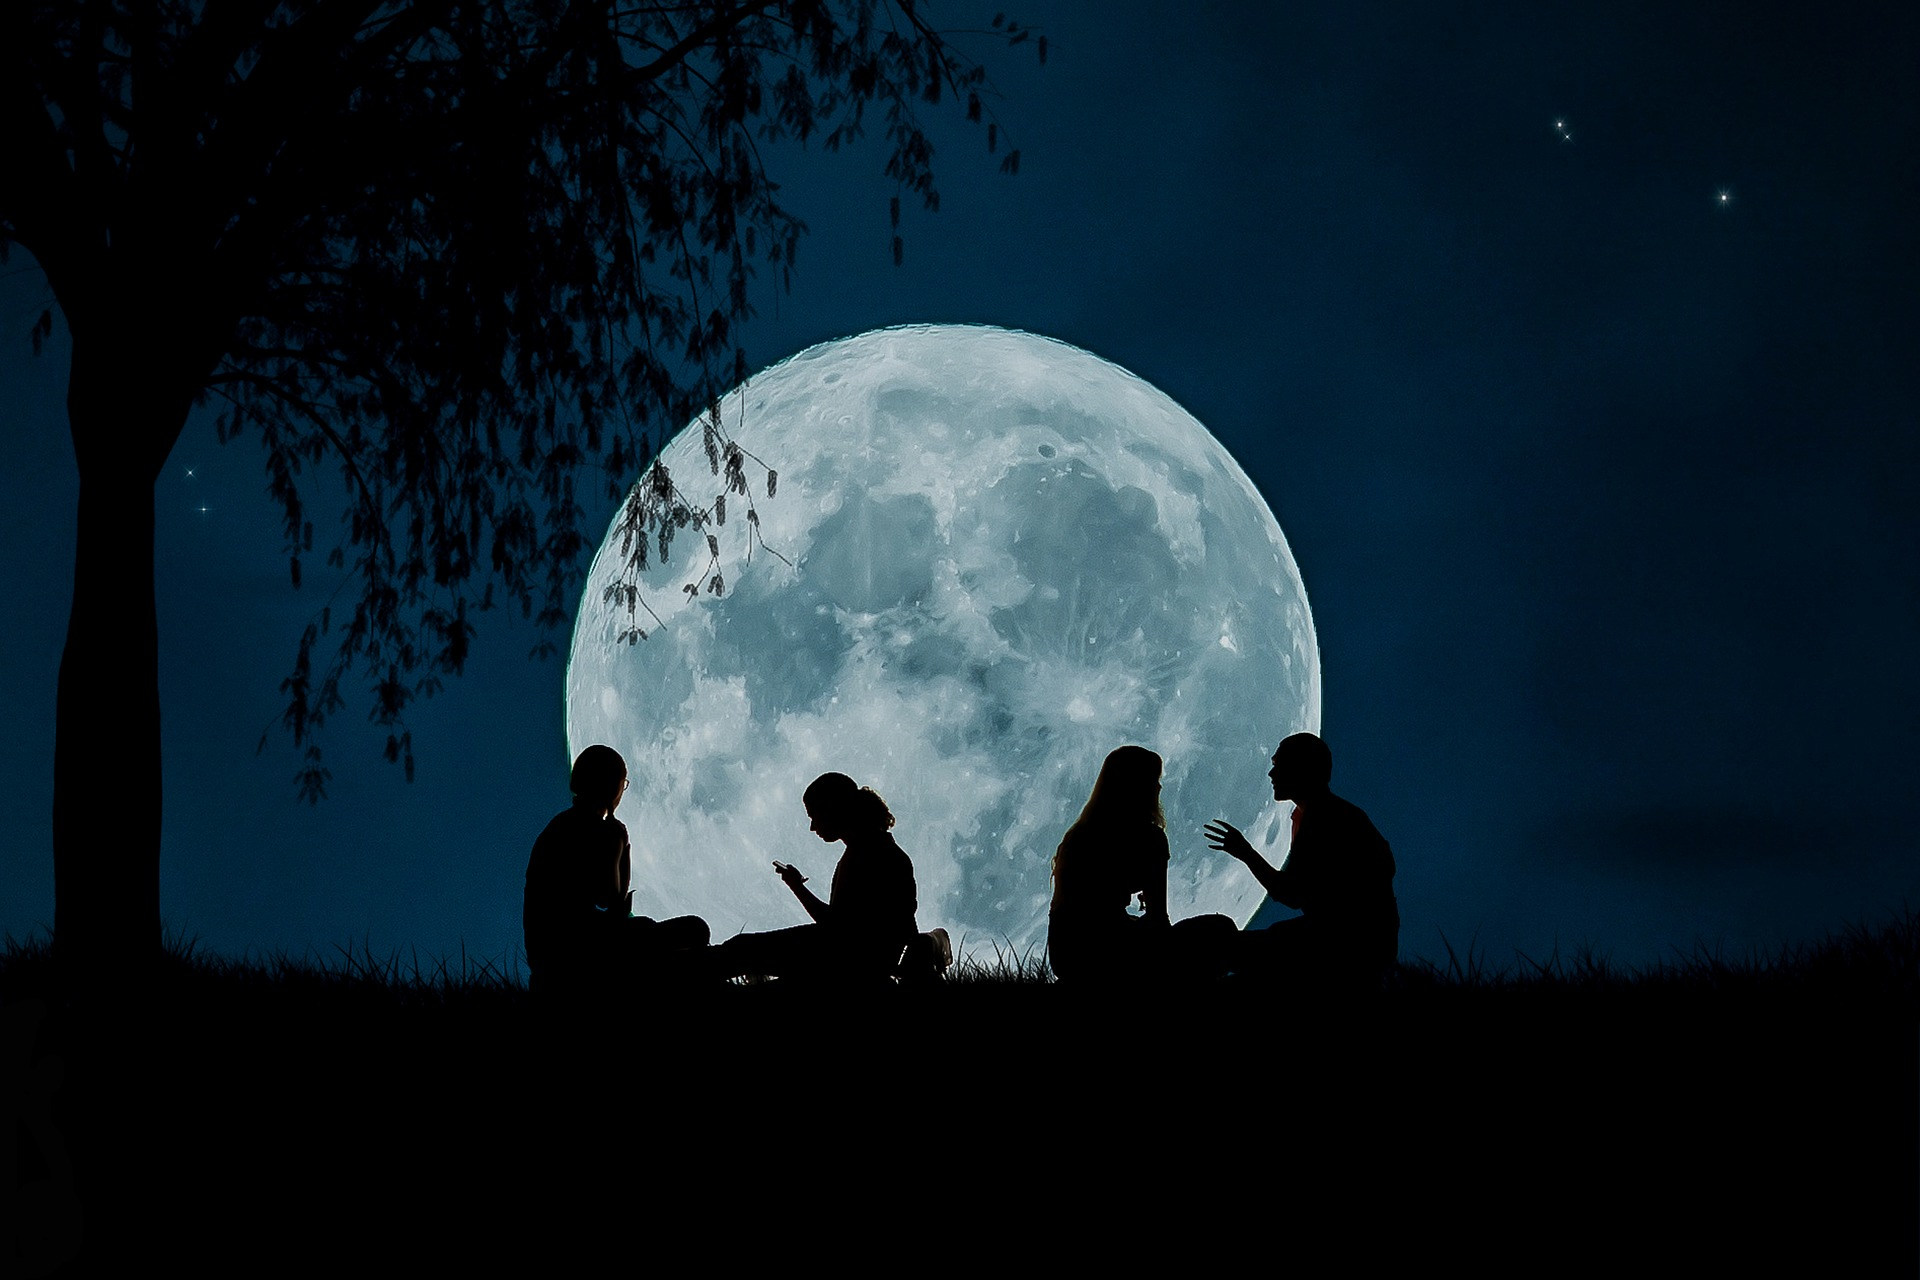 Night image of huge full moon with people observing